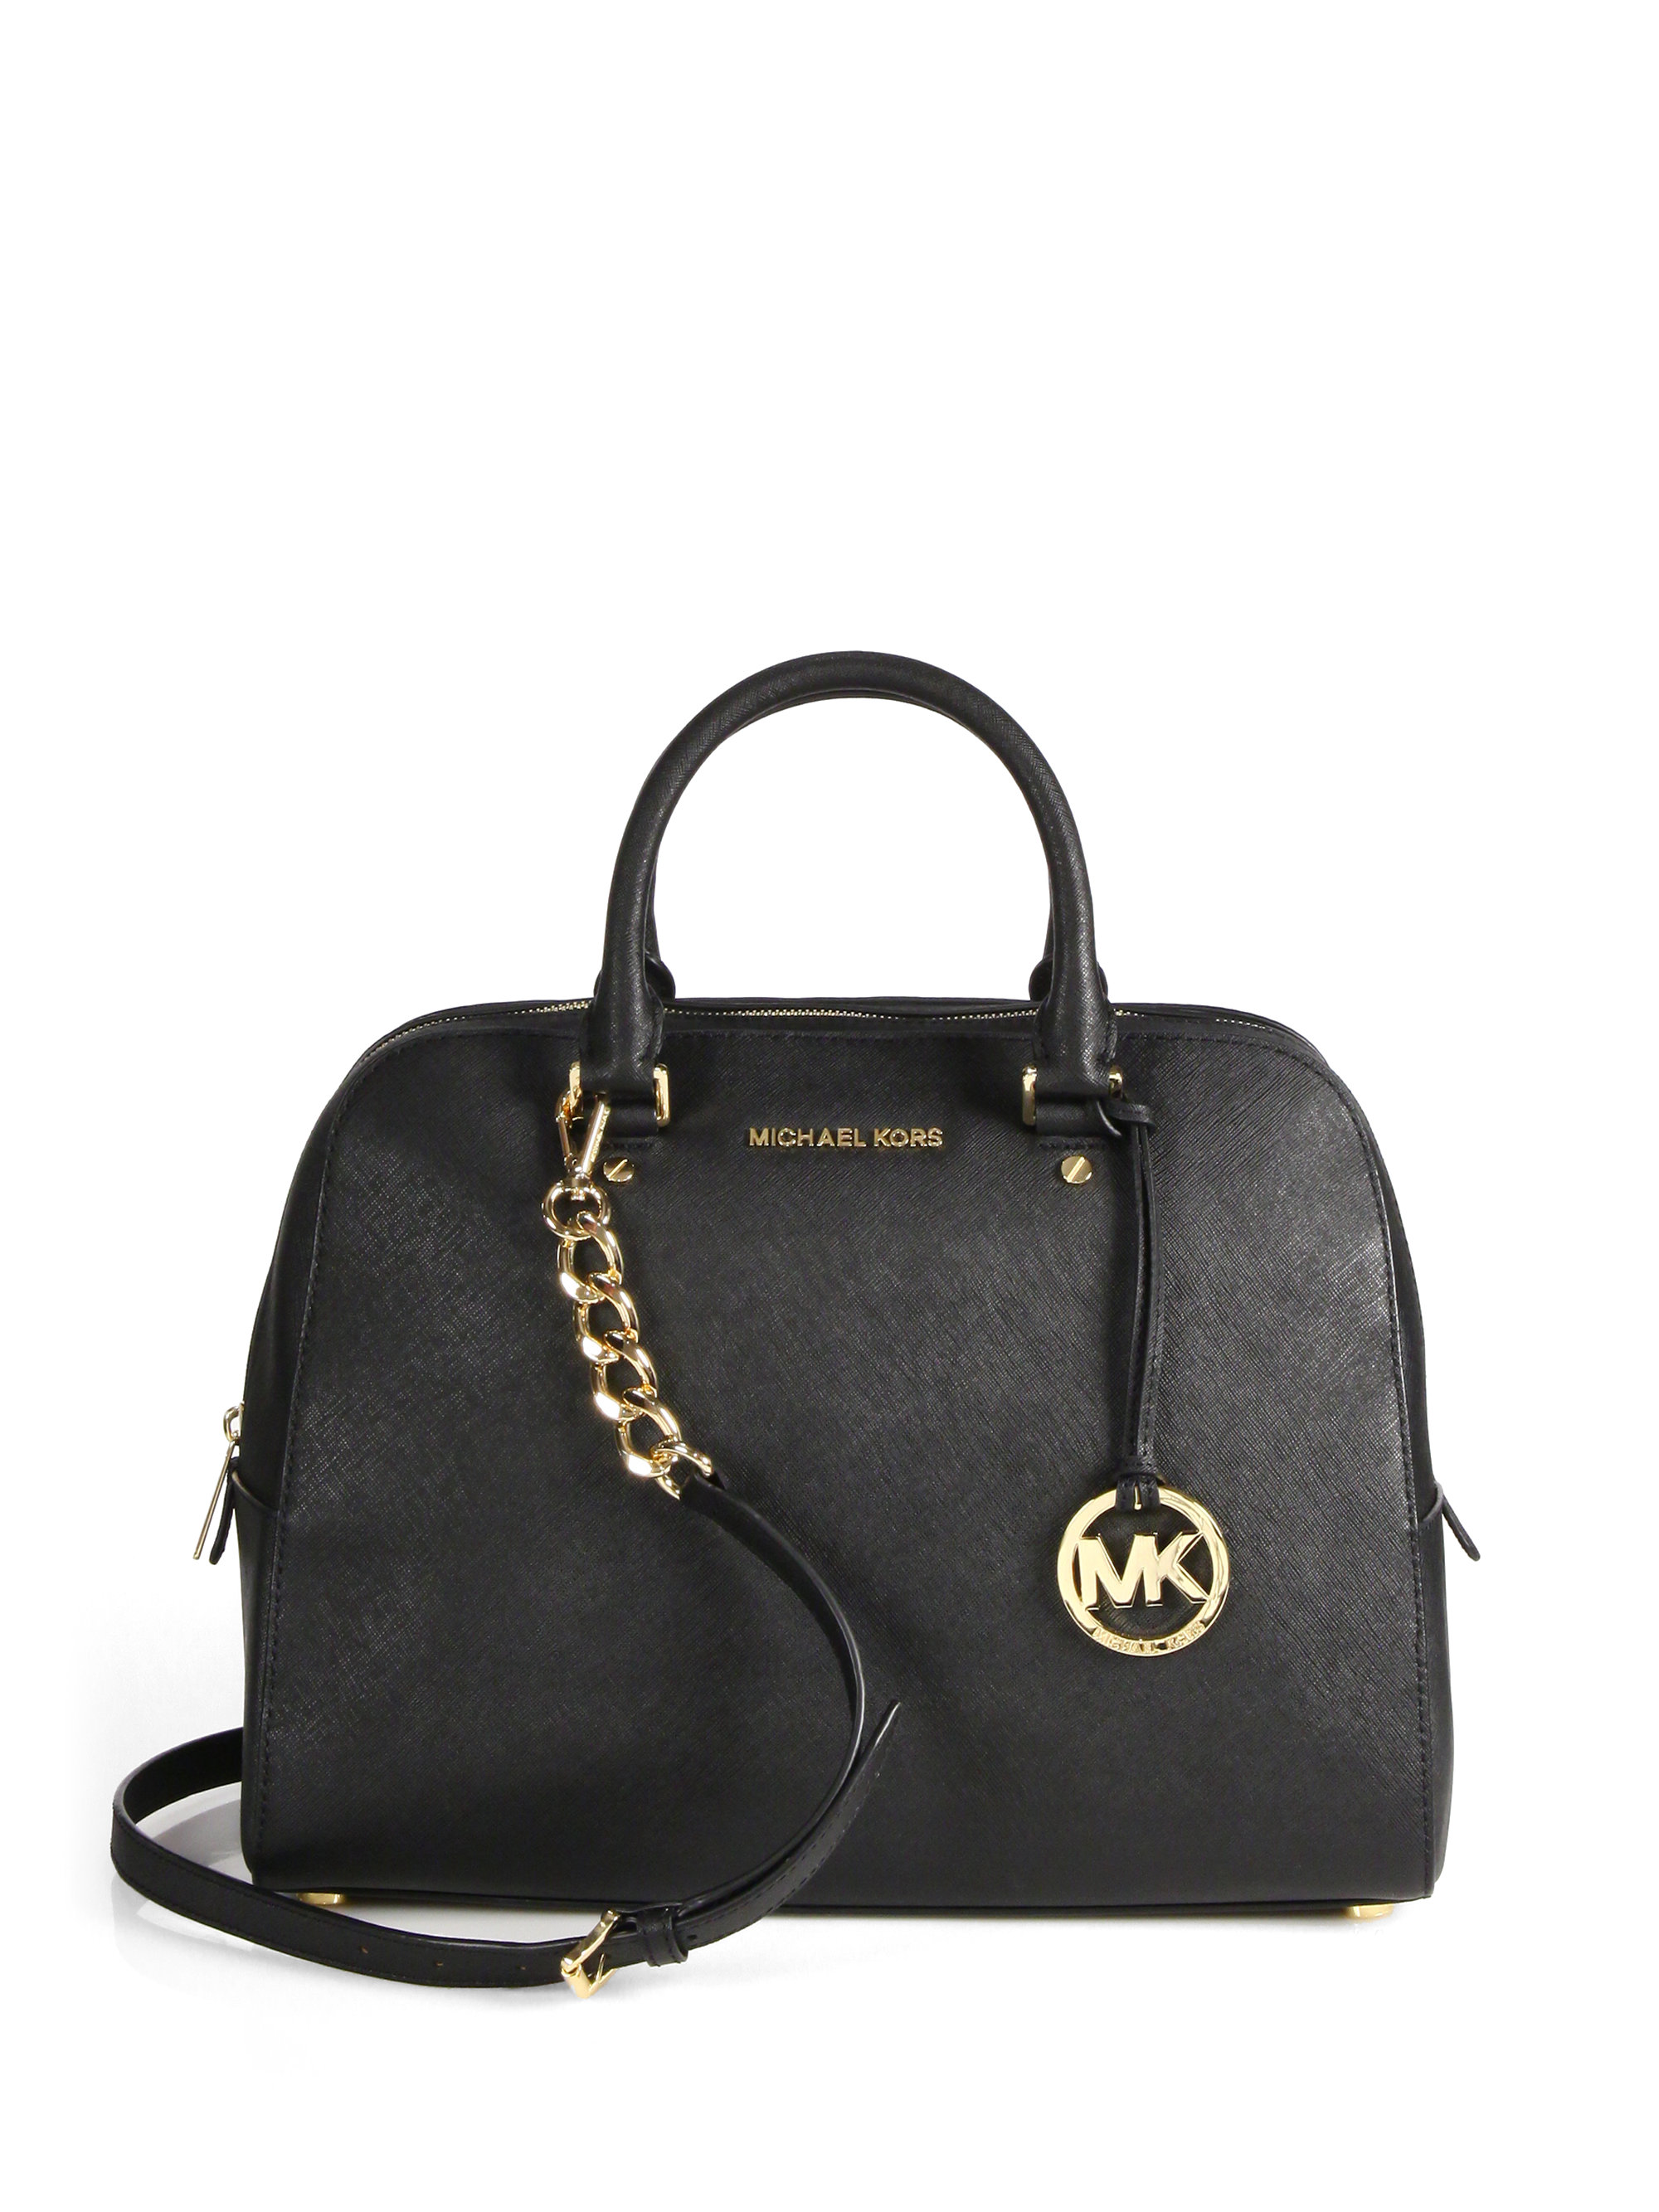 michael michael kors jet set travel satchel in black lyst. Black Bedroom Furniture Sets. Home Design Ideas